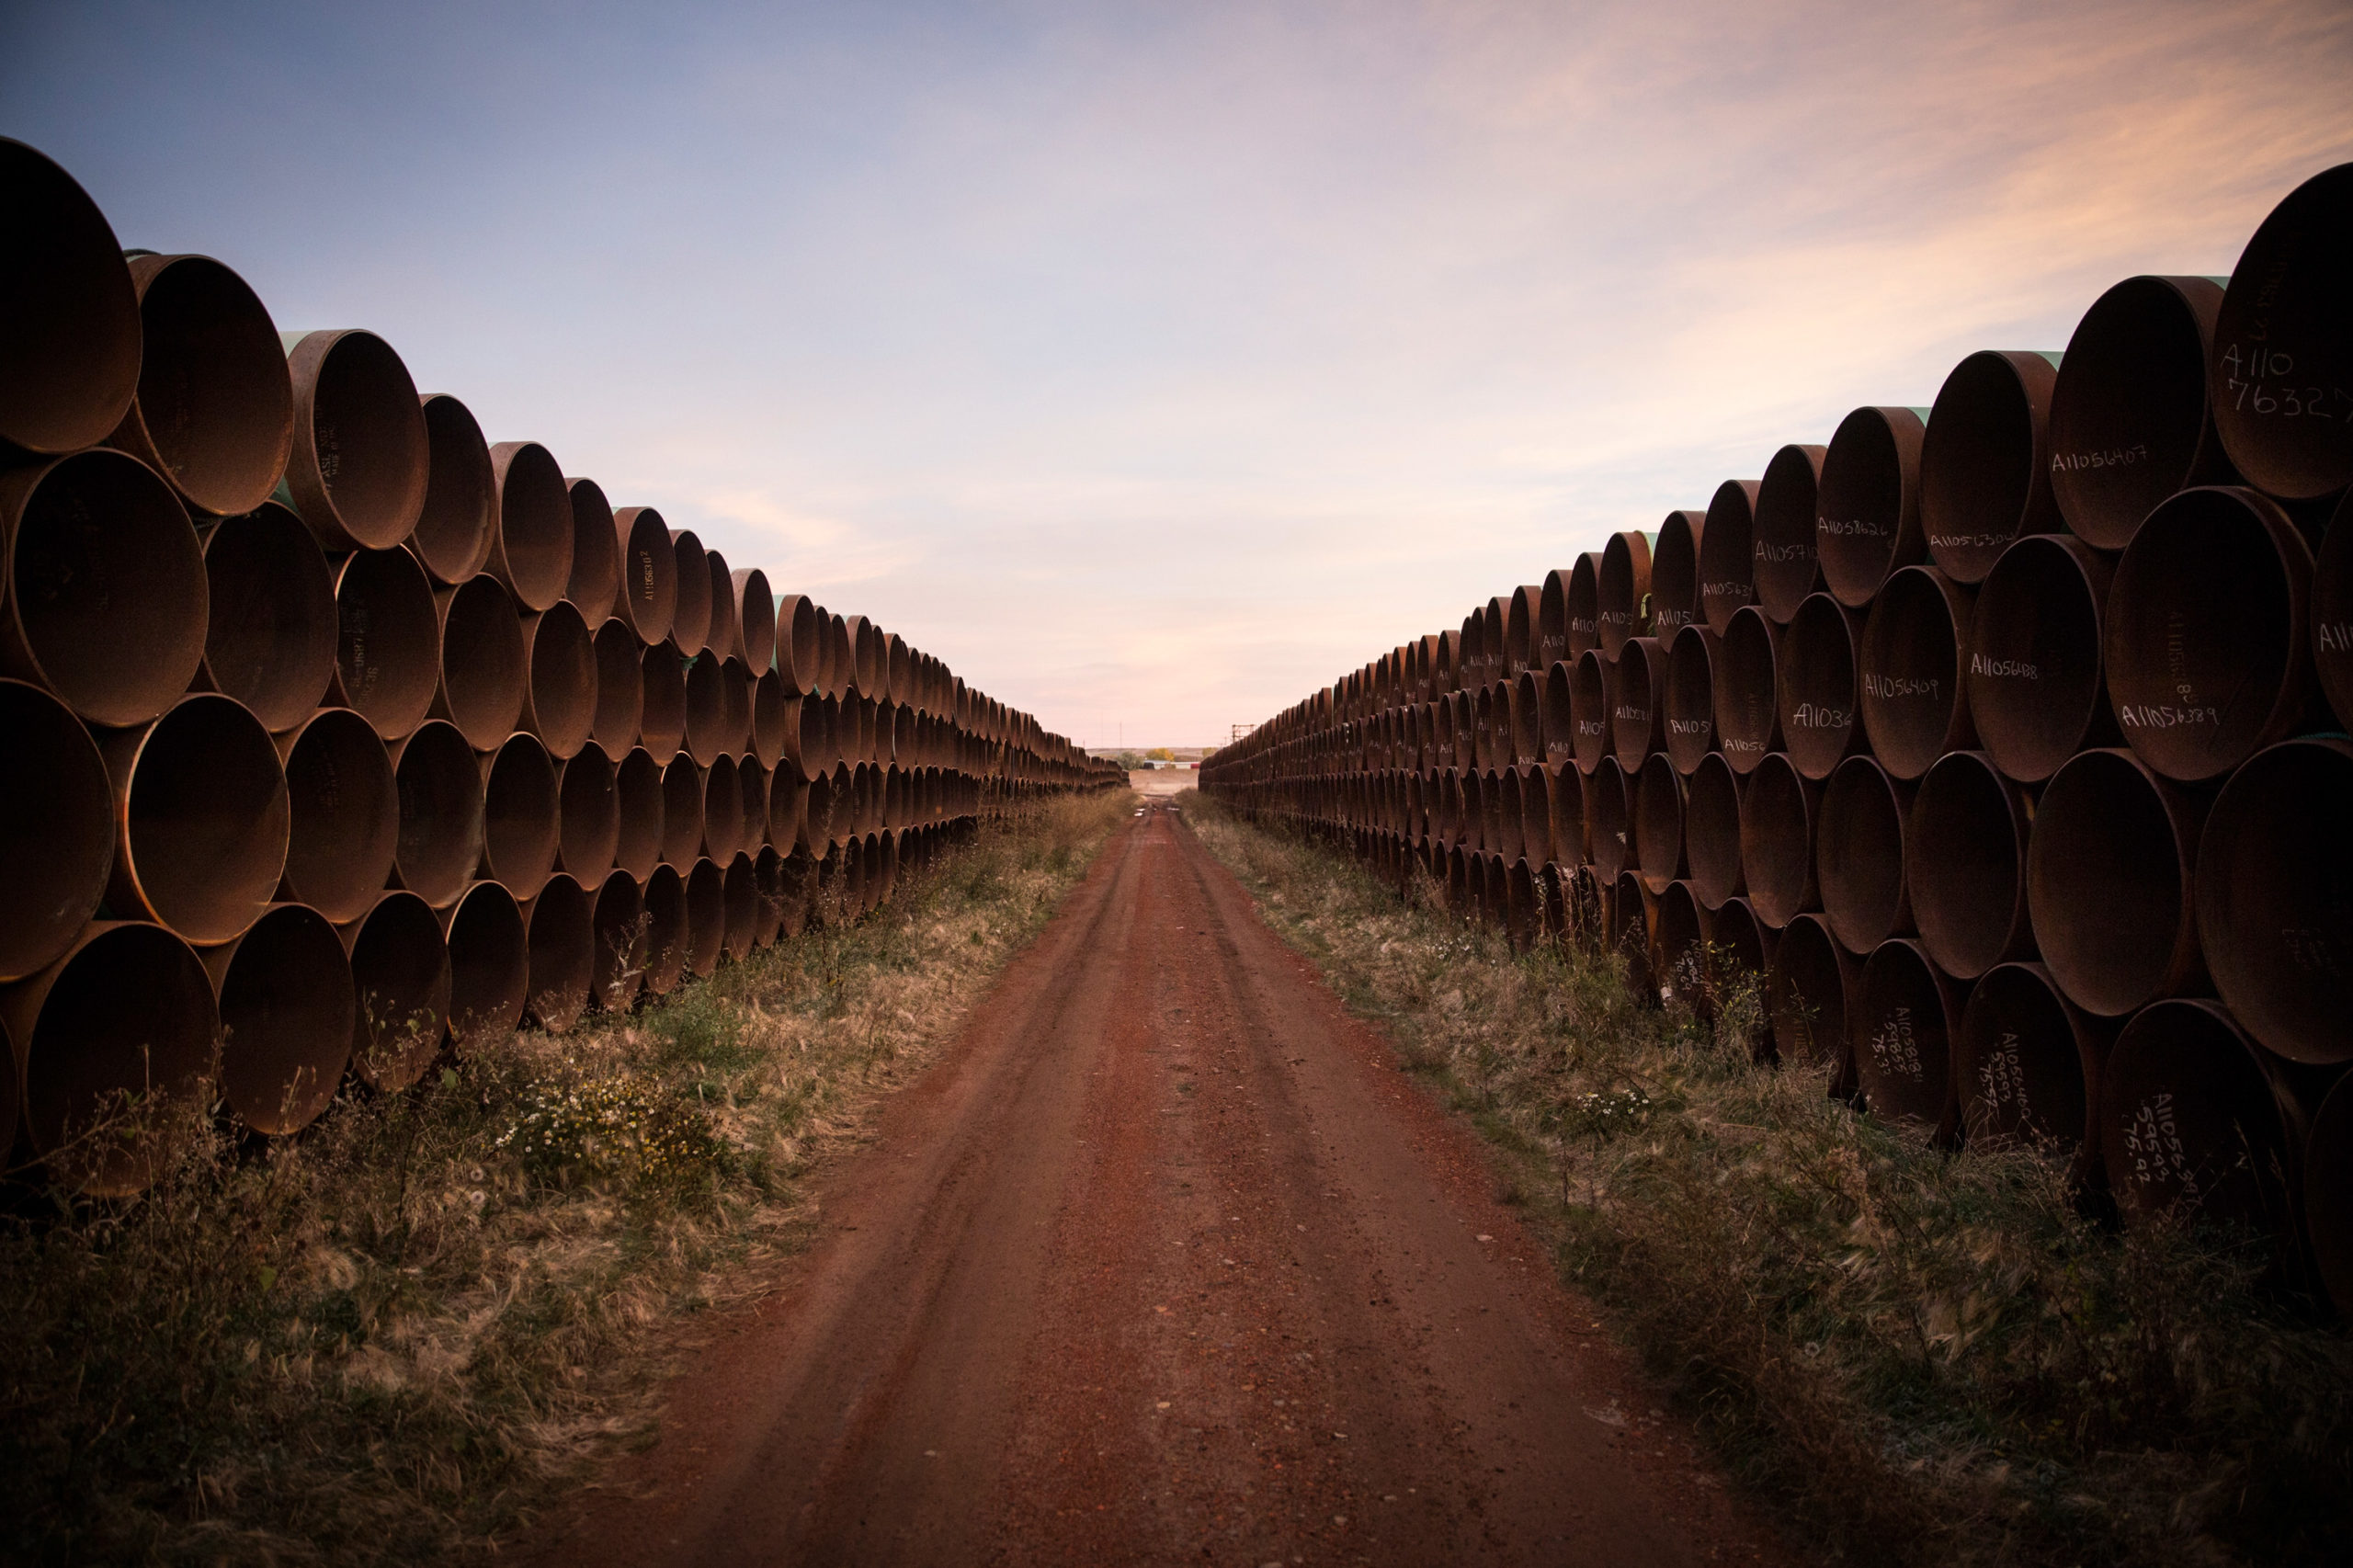 Miles of unused pipe, prepared for the proposed Keystone XL pipeline, sit in a lot on Oct. 14, 2014 outside Gascoyne, North Dakota. (Andrew Burton/Getty Images)